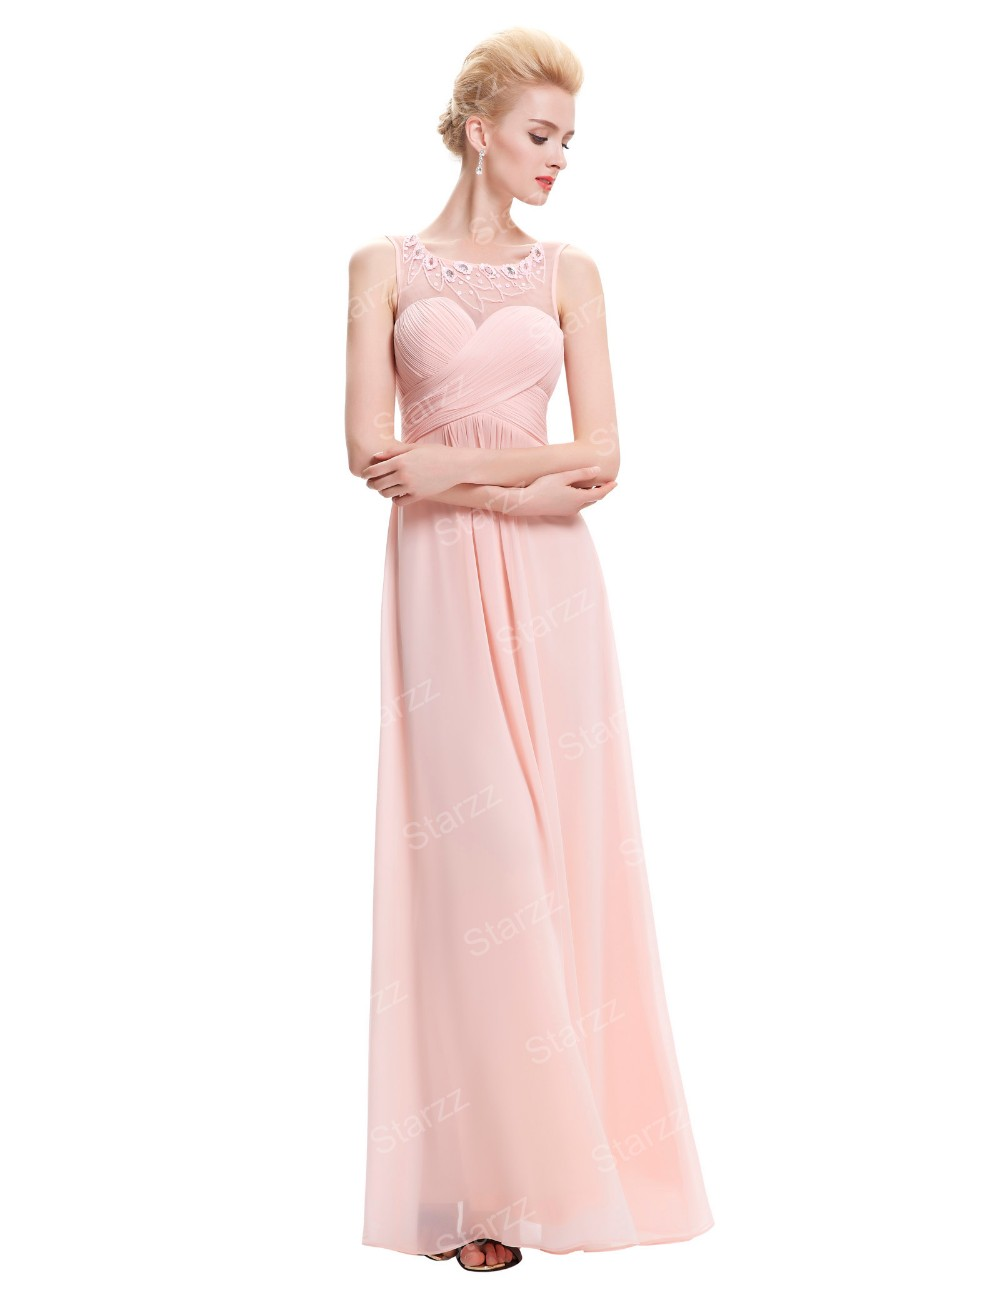 Starzz sleeveless light pink chiffon long bridesmaid dress starzz sleeveless light pink chiffon long bridesmaid dress st000060 3 ombrellifo Image collections